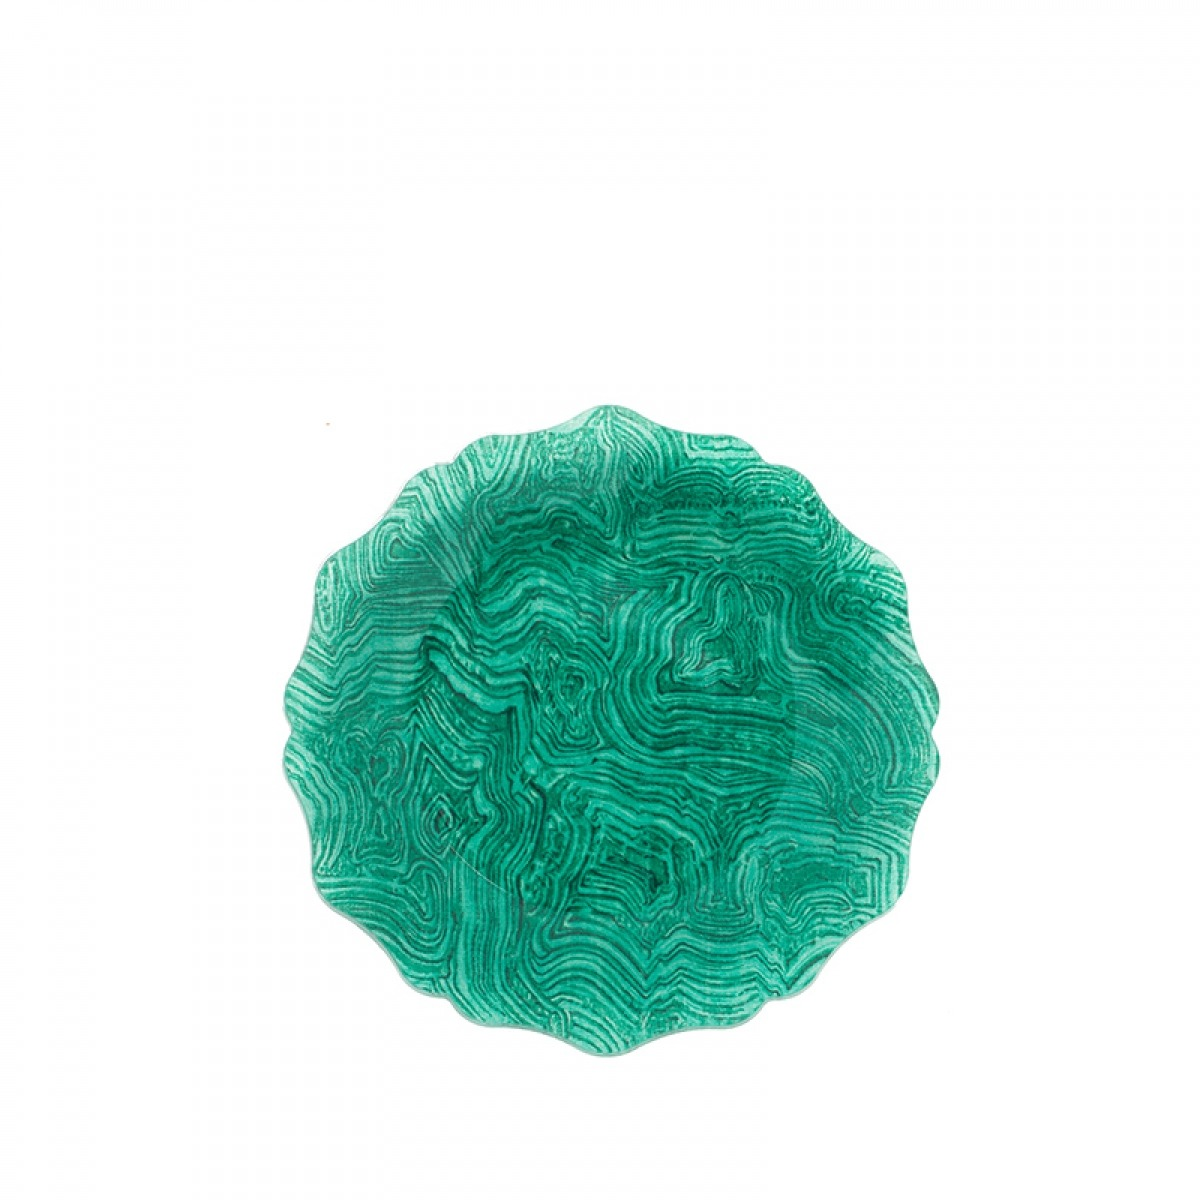 Porta Jarra Malachite Green